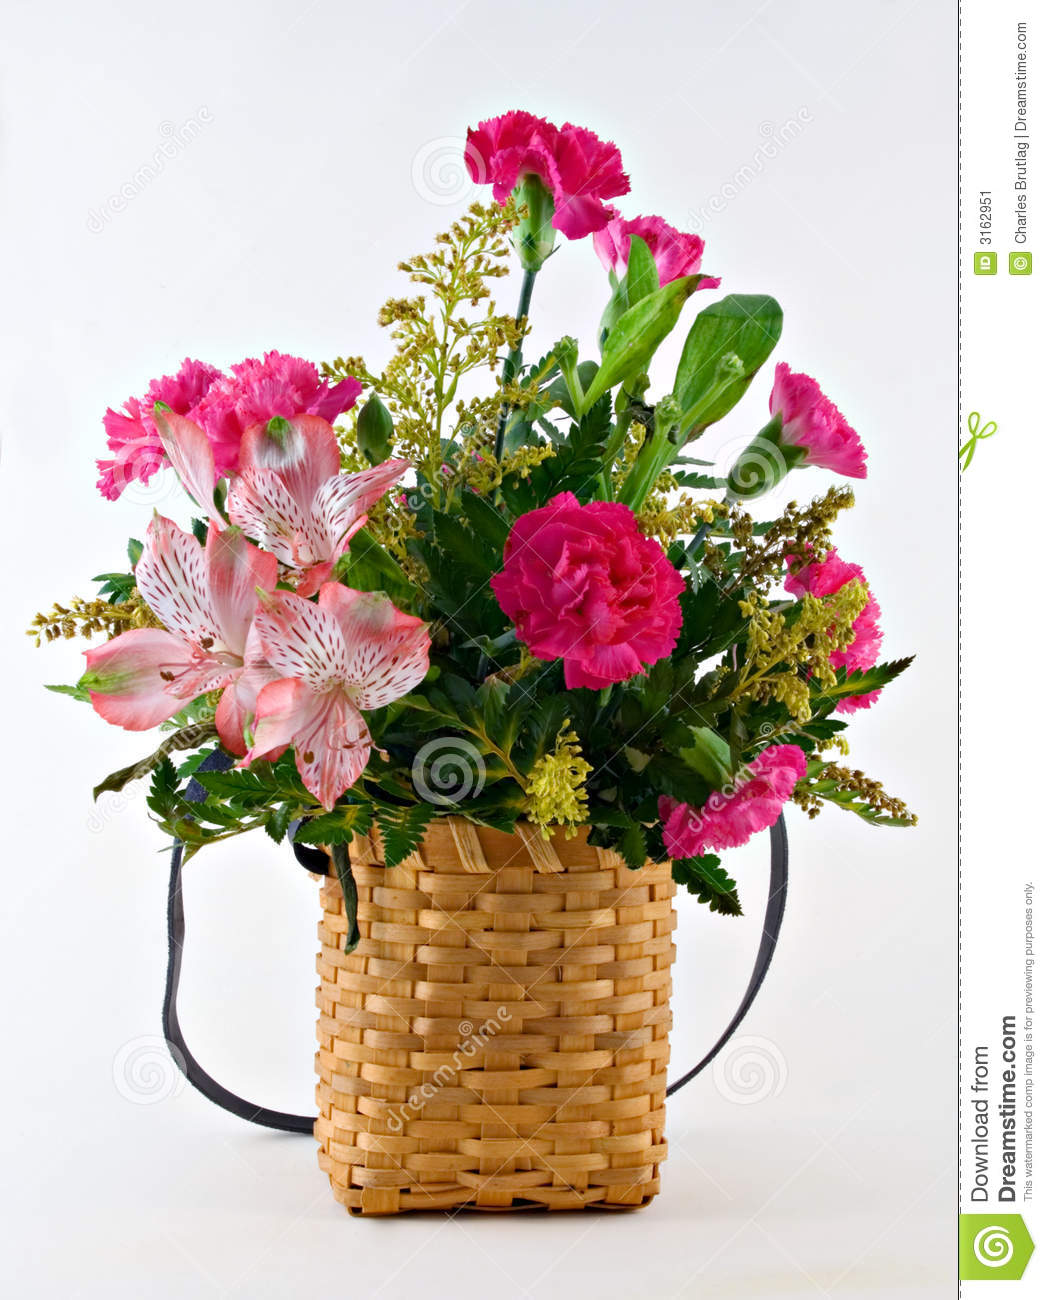 Flower Baskets Photos : Flower basket stock image